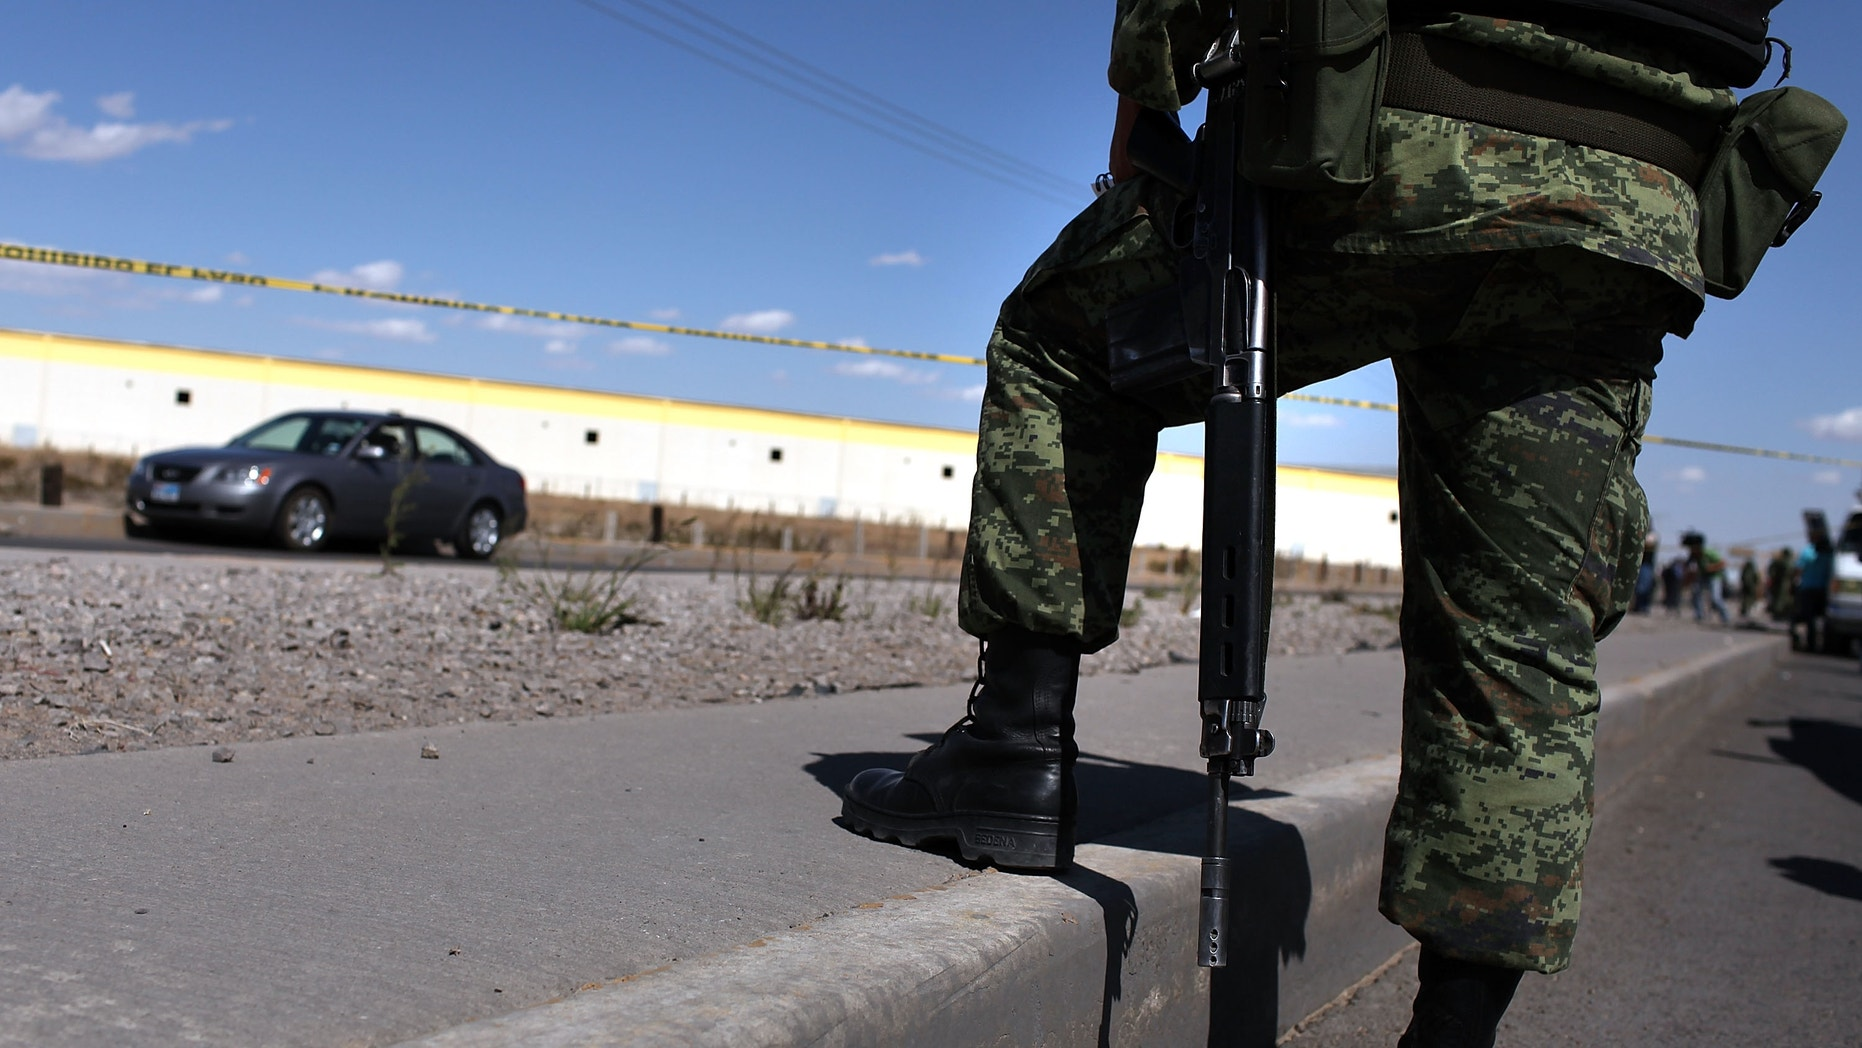 > on March 24, 2010 in Juarez, Mexico.